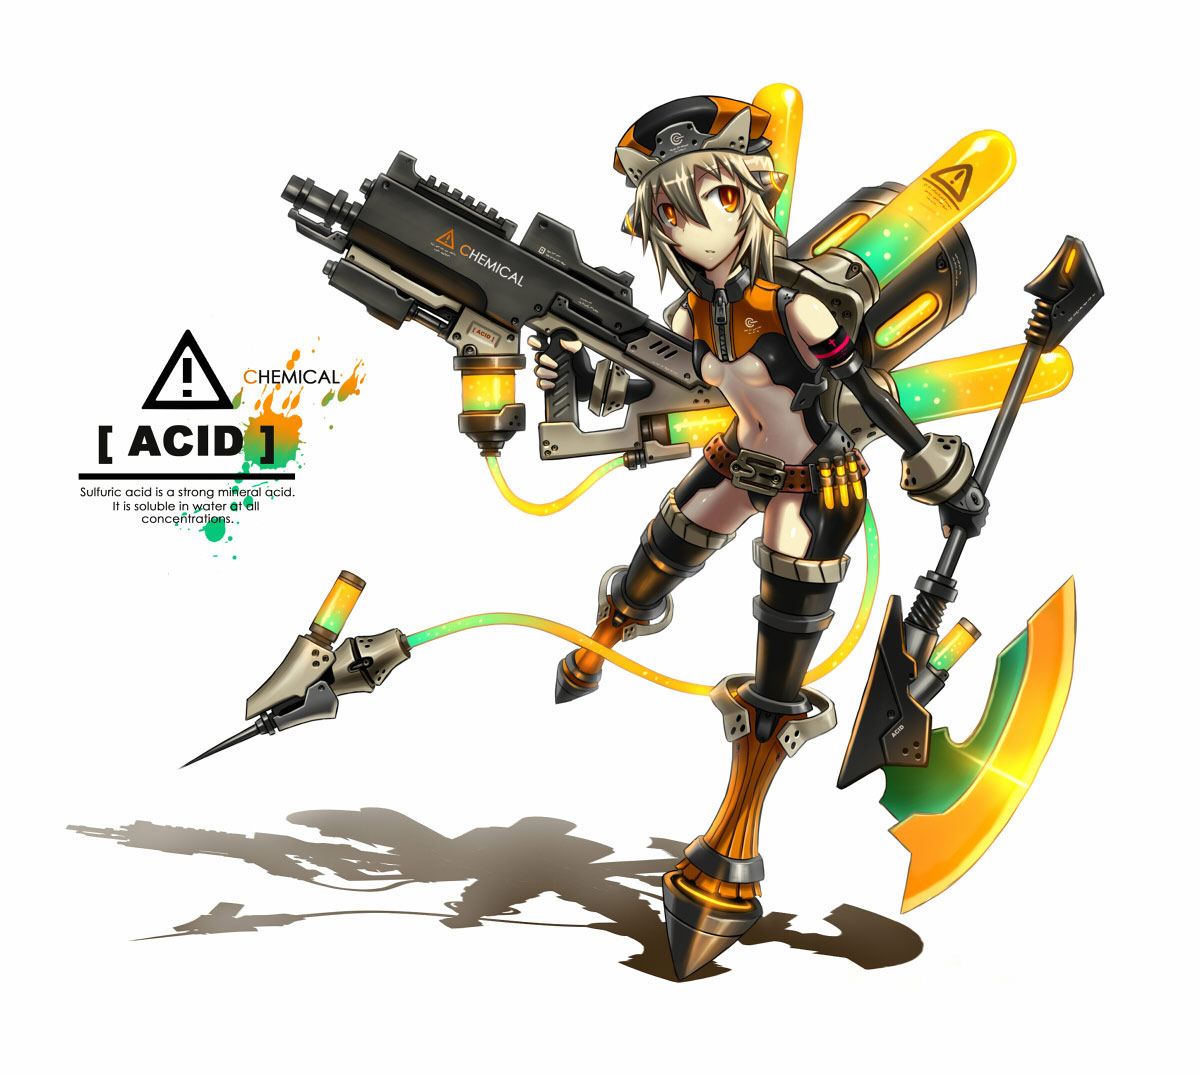 Anime Robot: Gia: Moefication Of Chemicals